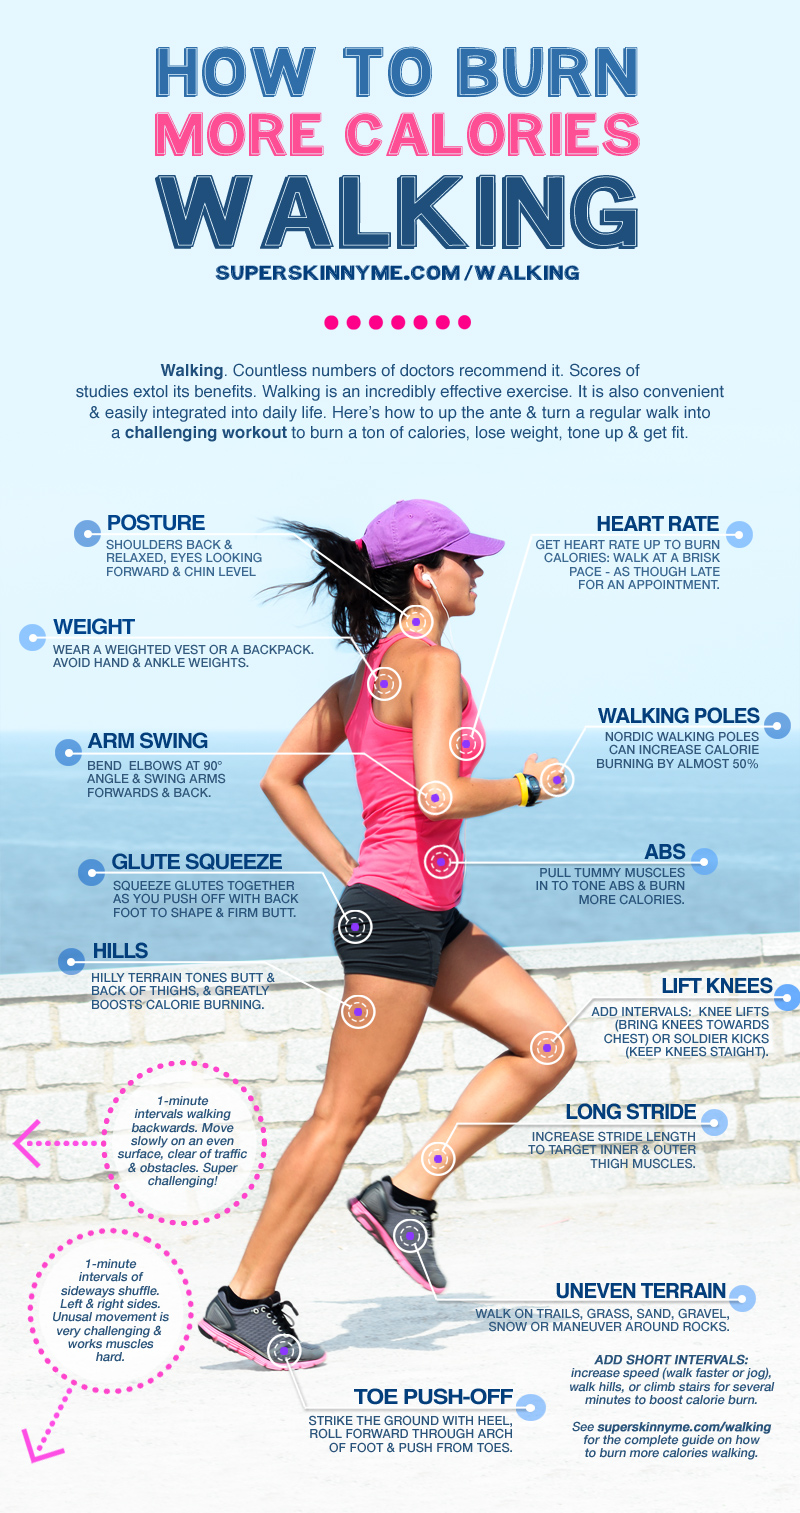 How to burn more calories walking & lose weight